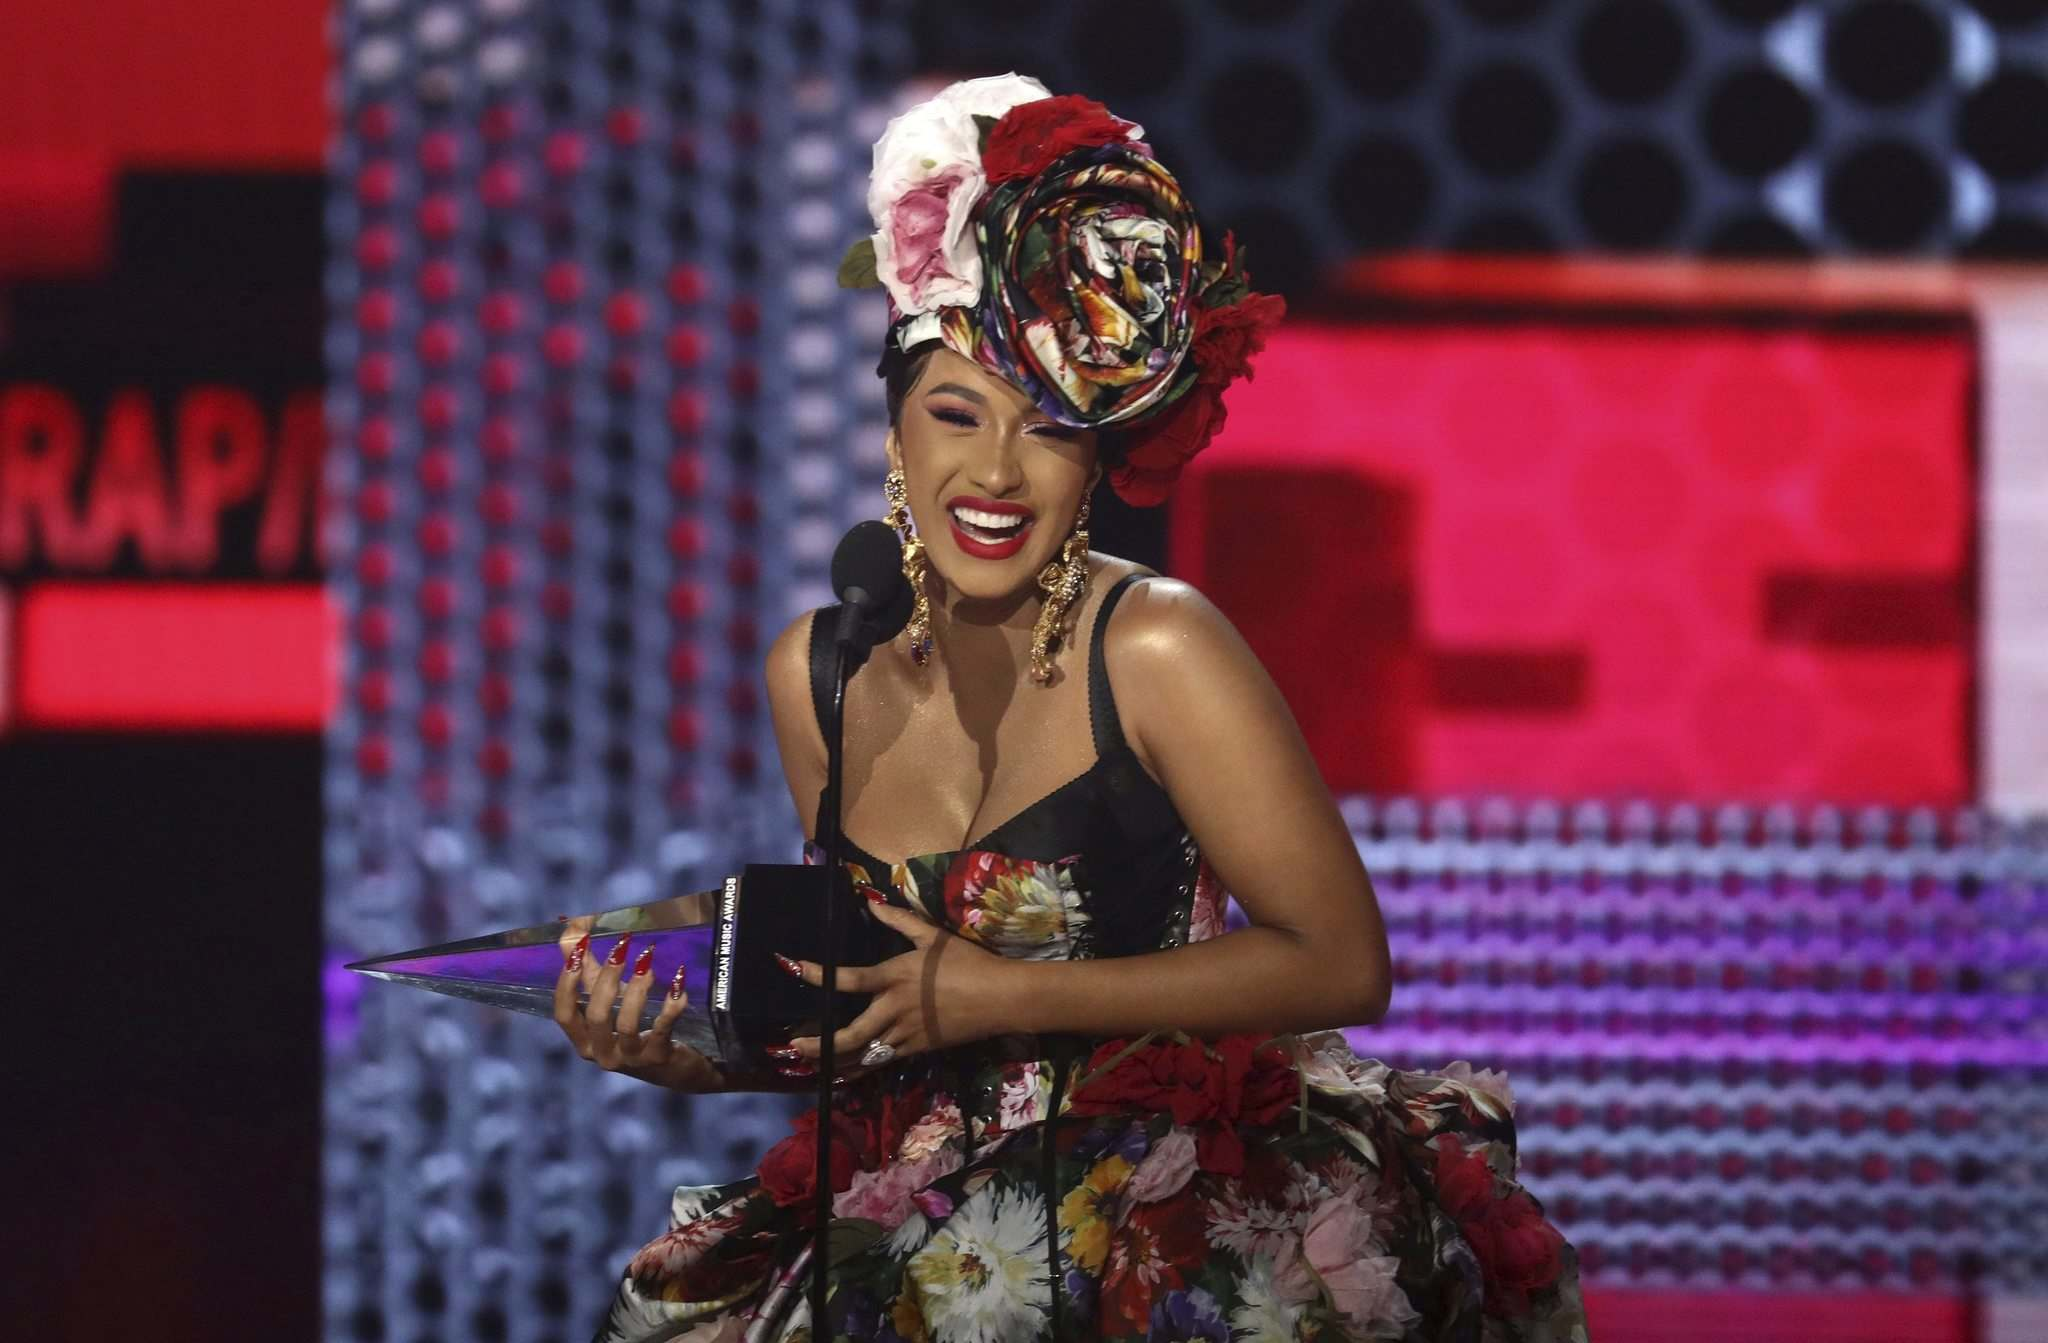 Matt Sayles / Invision</p><p>Cardi B confesses her love for politics and presidential history in a personal interview with GQ.</p>